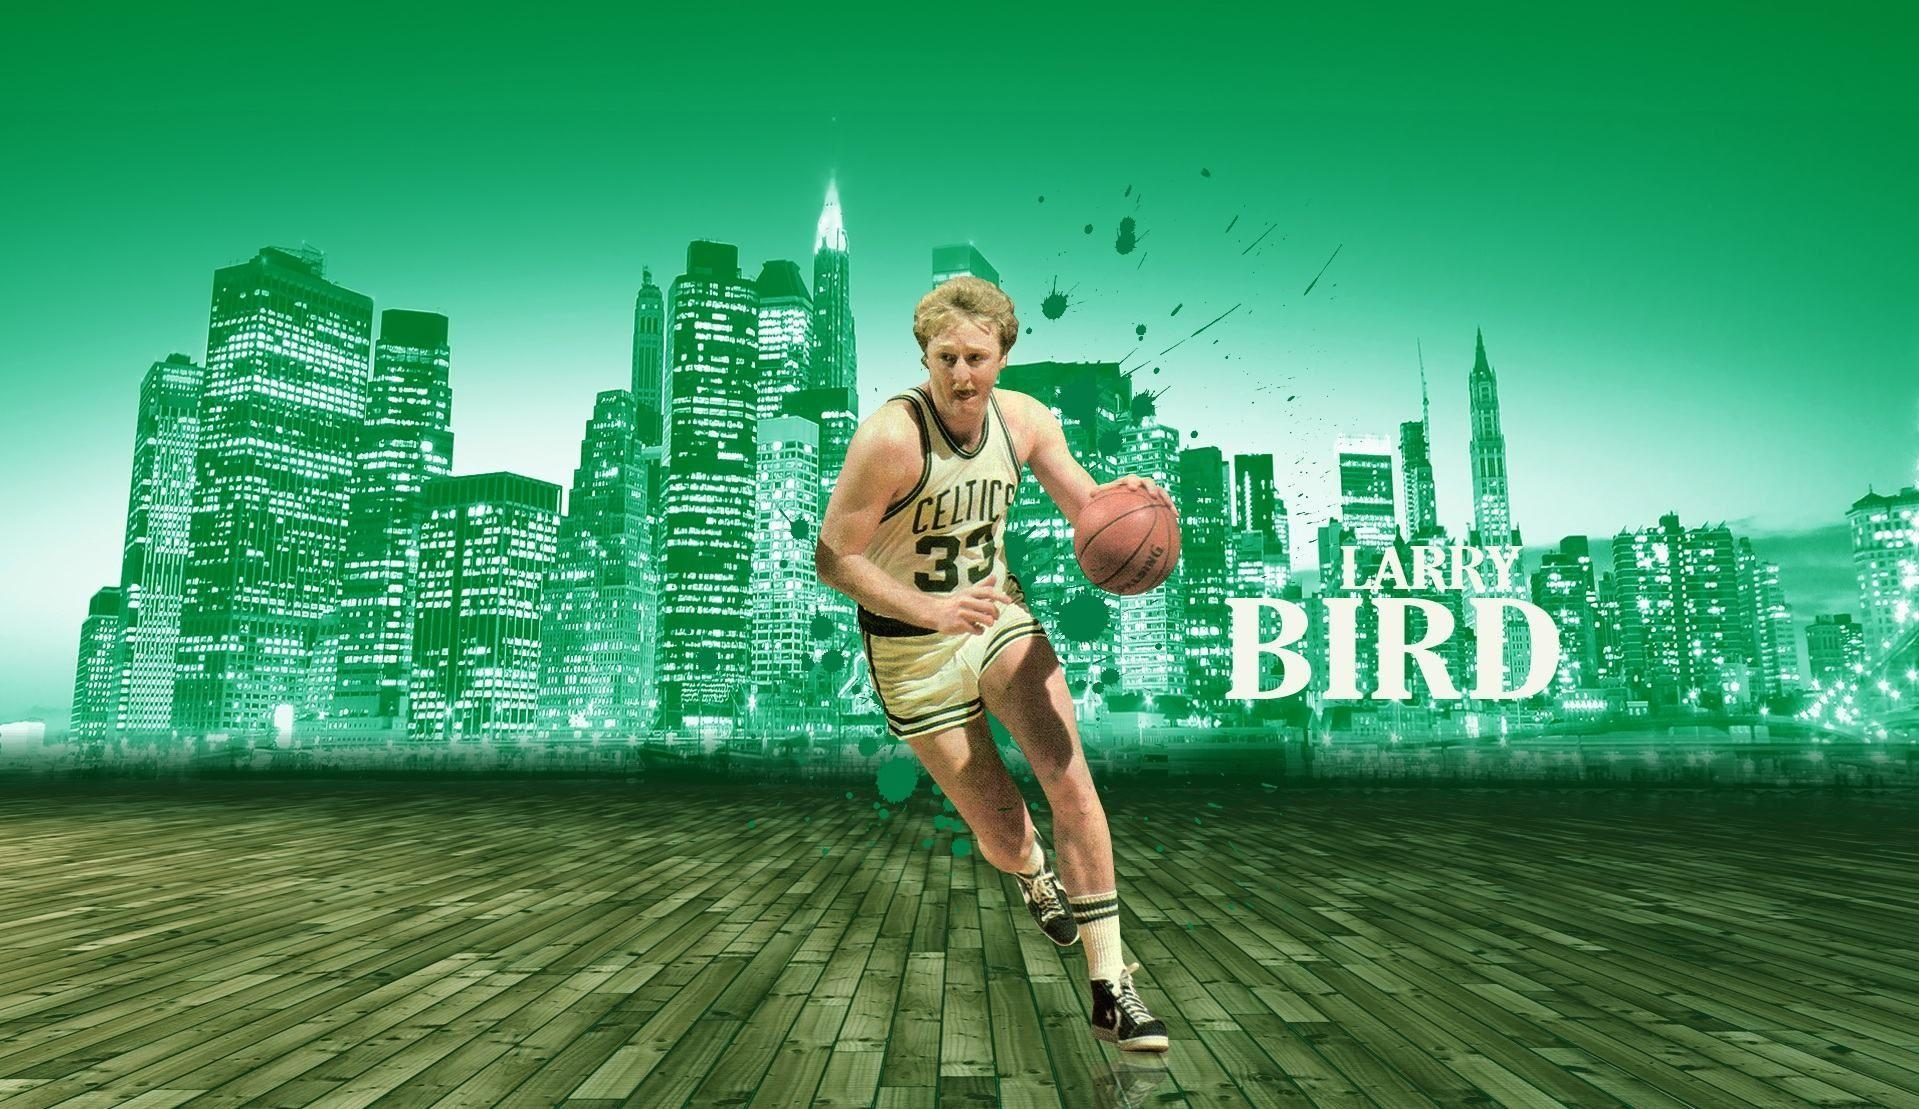 Larry Bird Wallpapers High Resolution and Quality Download